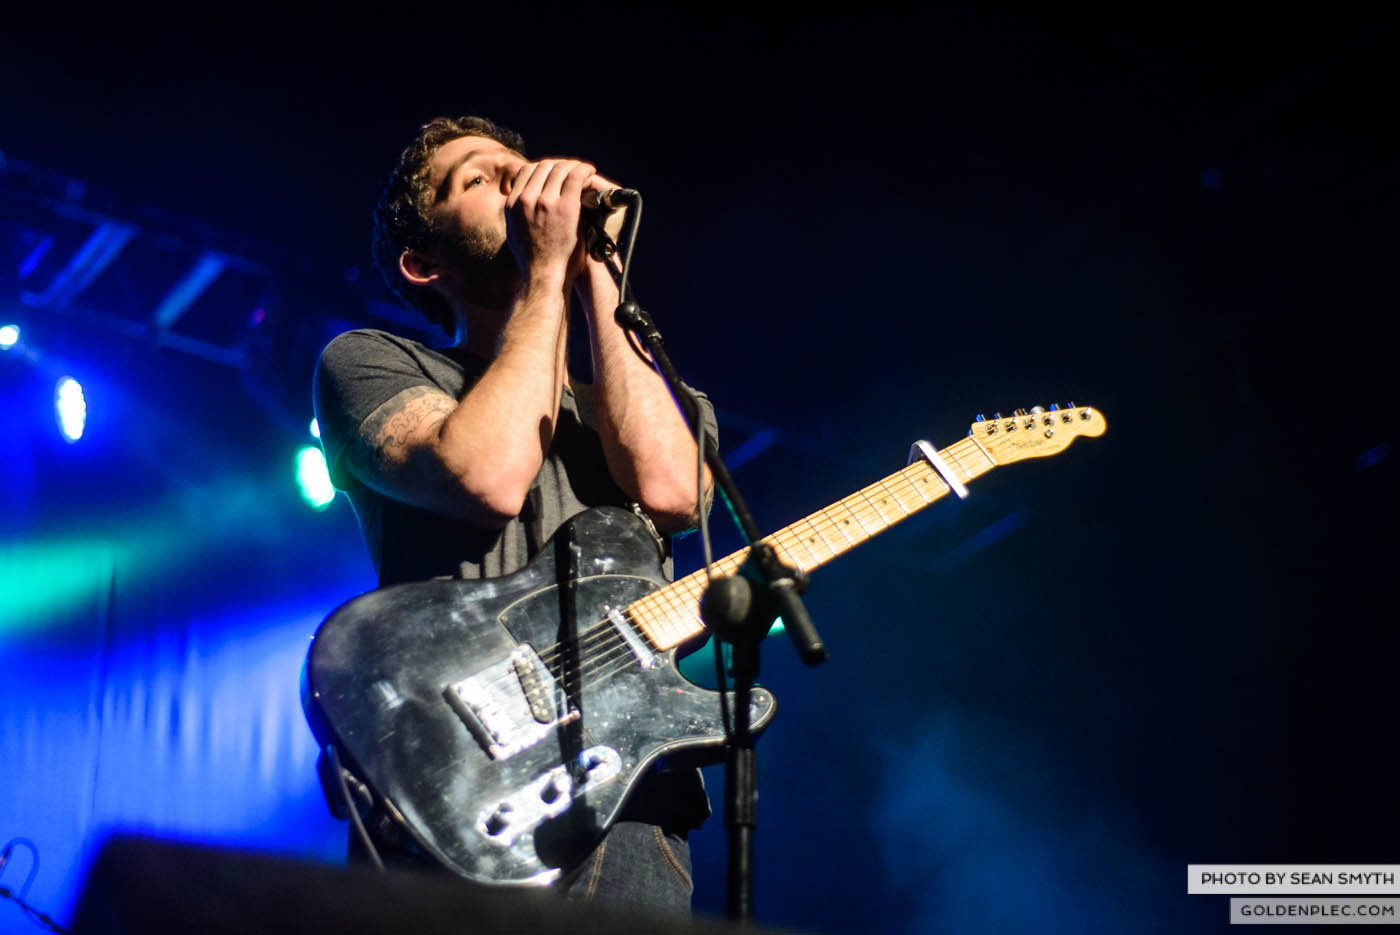 the-antlers-at-the-olympia-theatre-by-sean-smyth-30-10-14-7-of-22